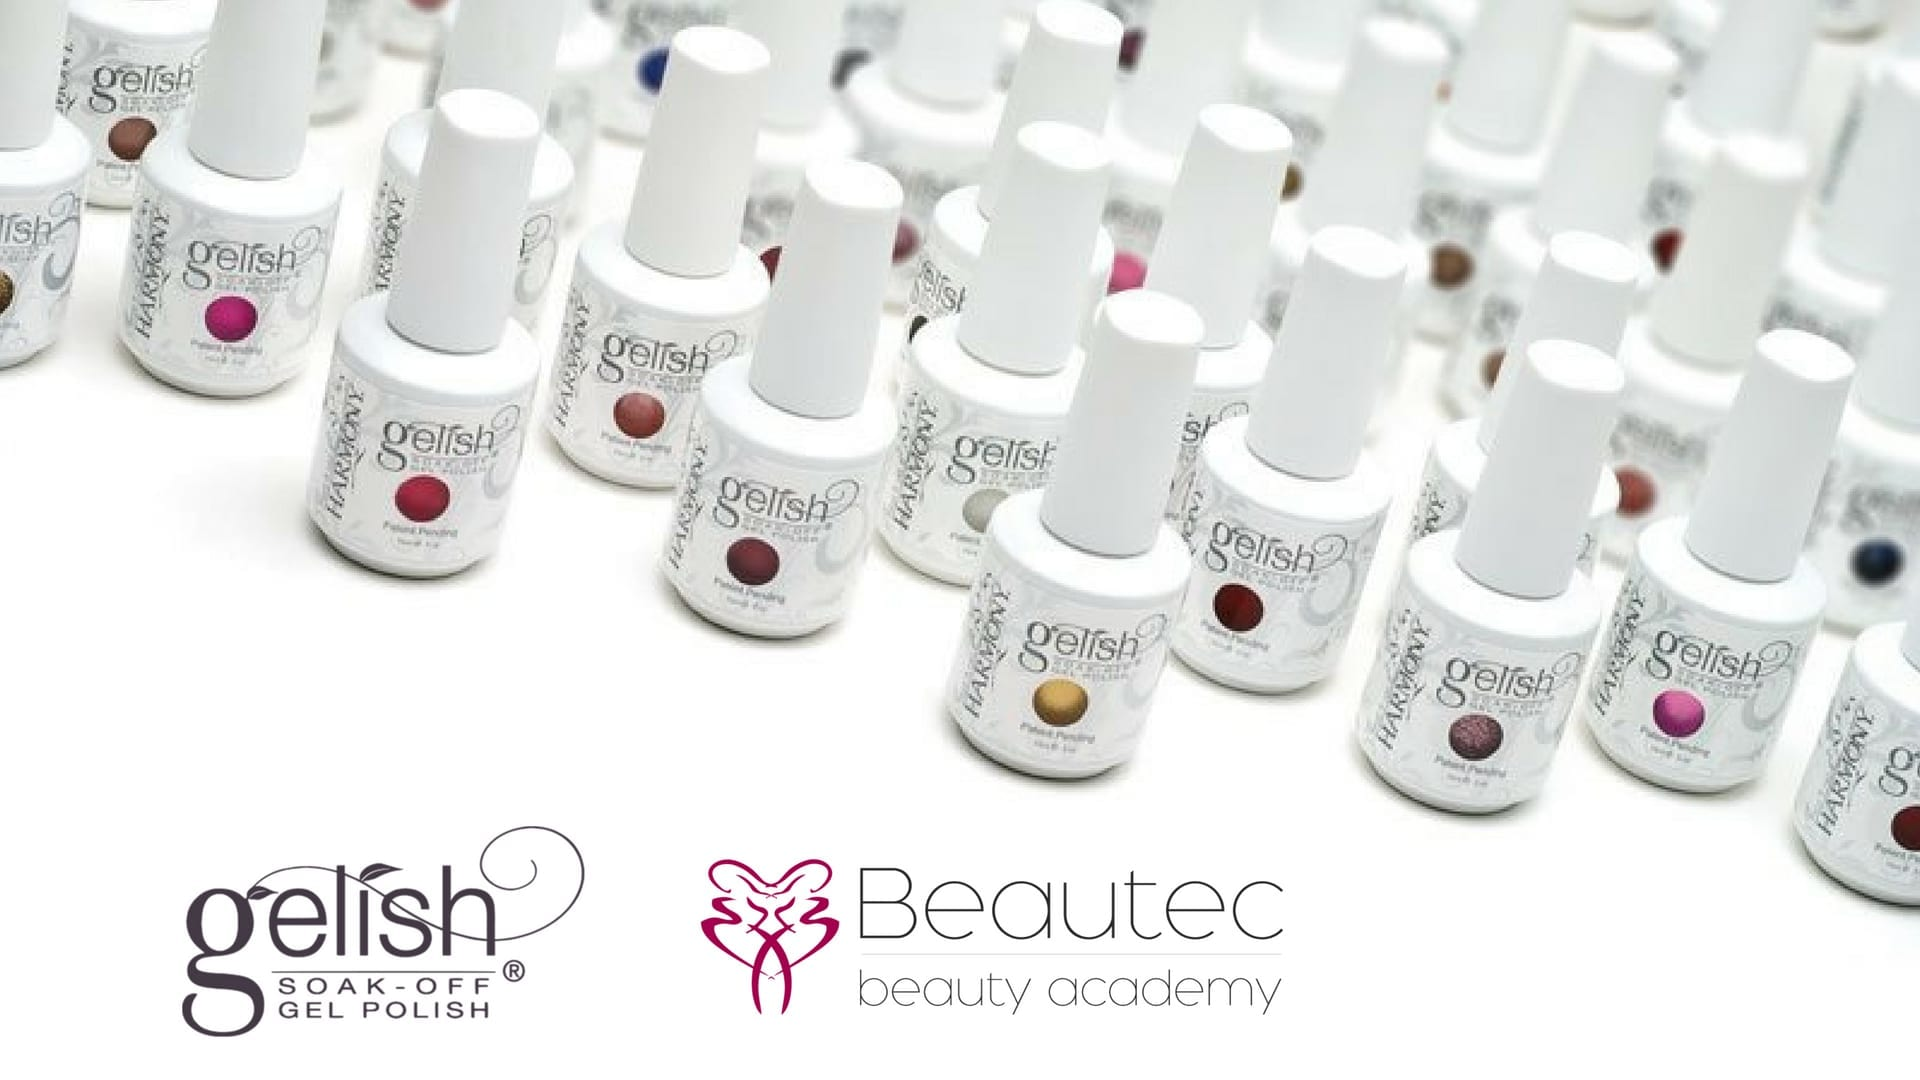 Gelish Course with kit